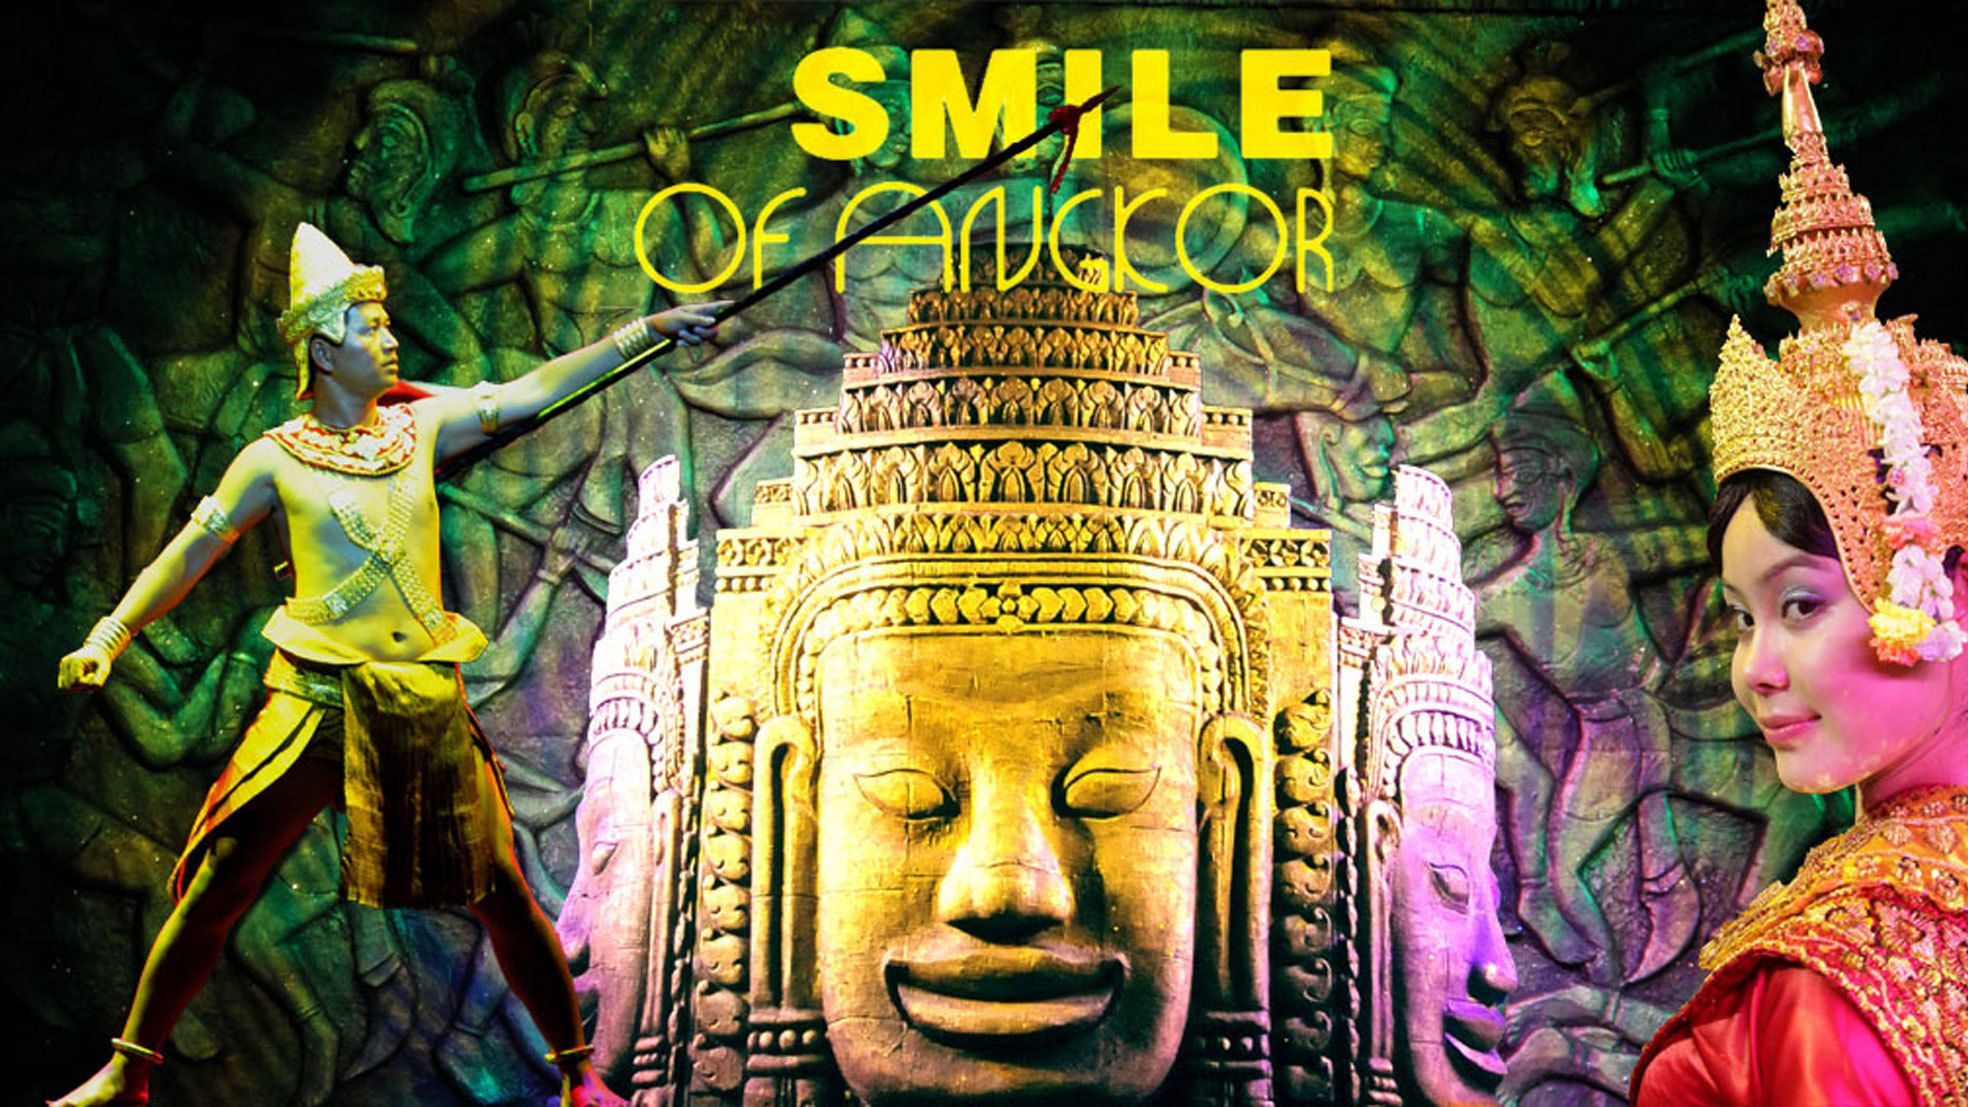 Smile of Angkor Show with Buffet Dinner at Smile Angkor Grand Theater